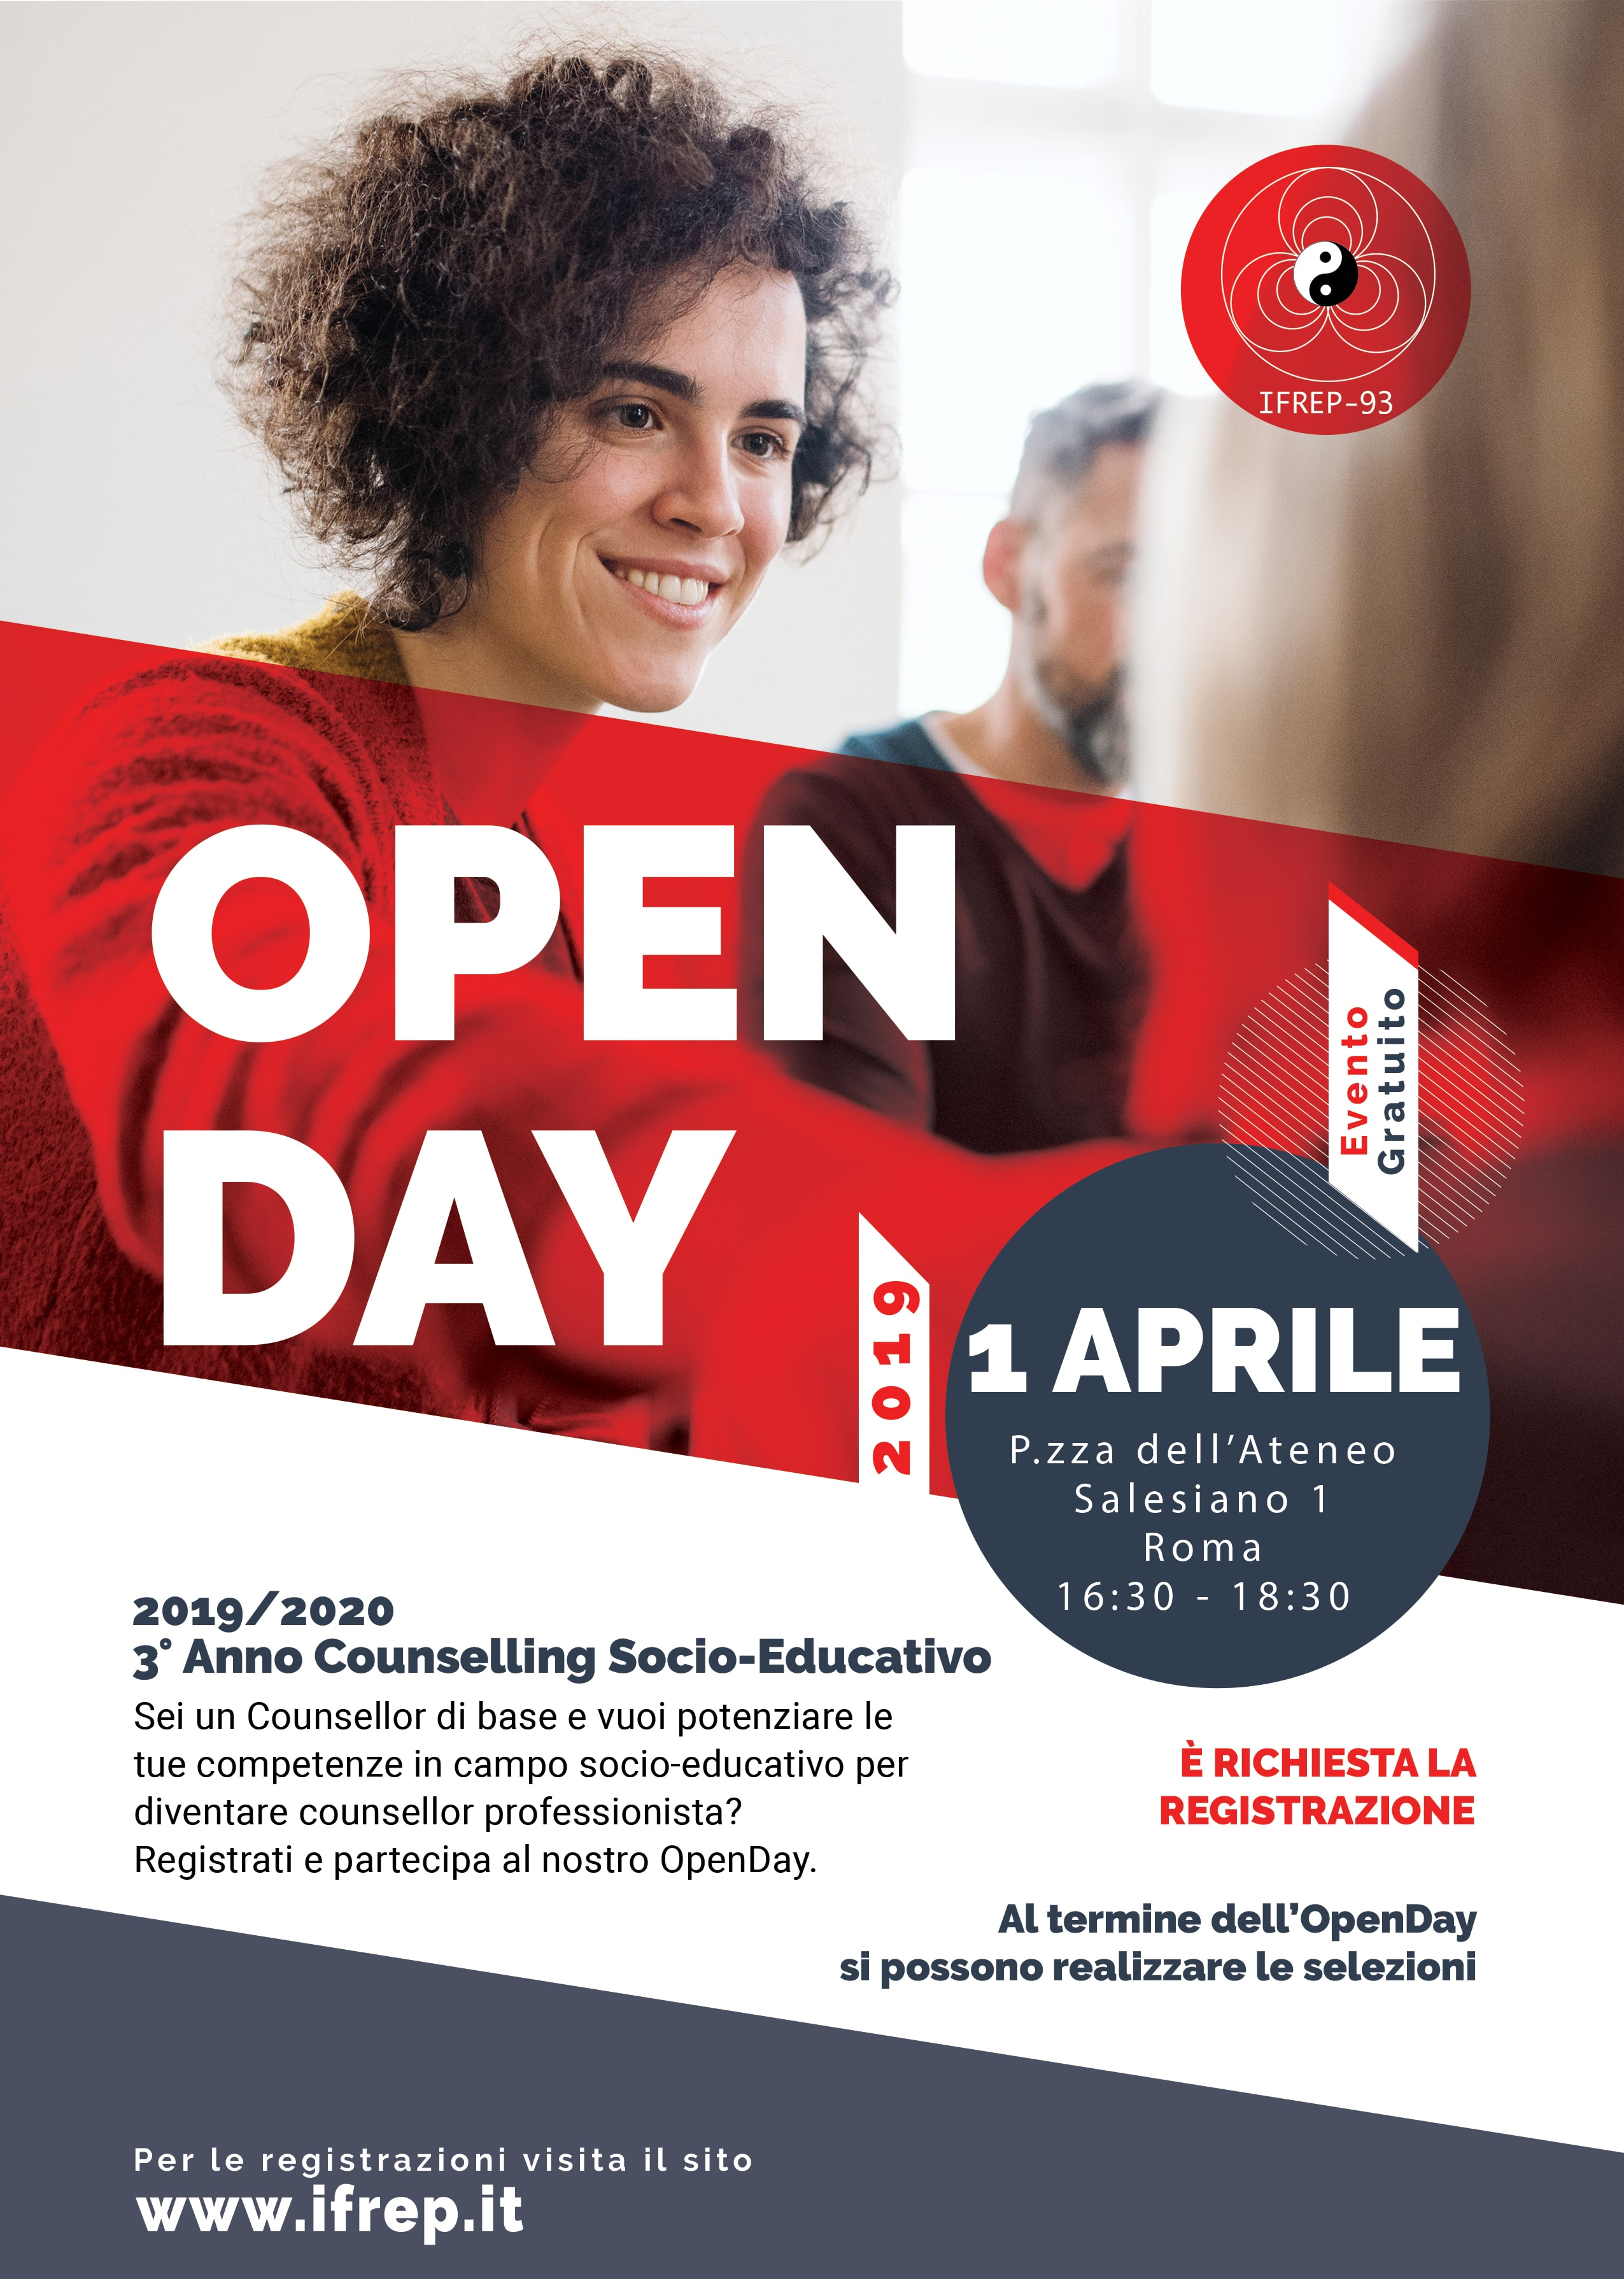 1° Aprile 2019 Open Day